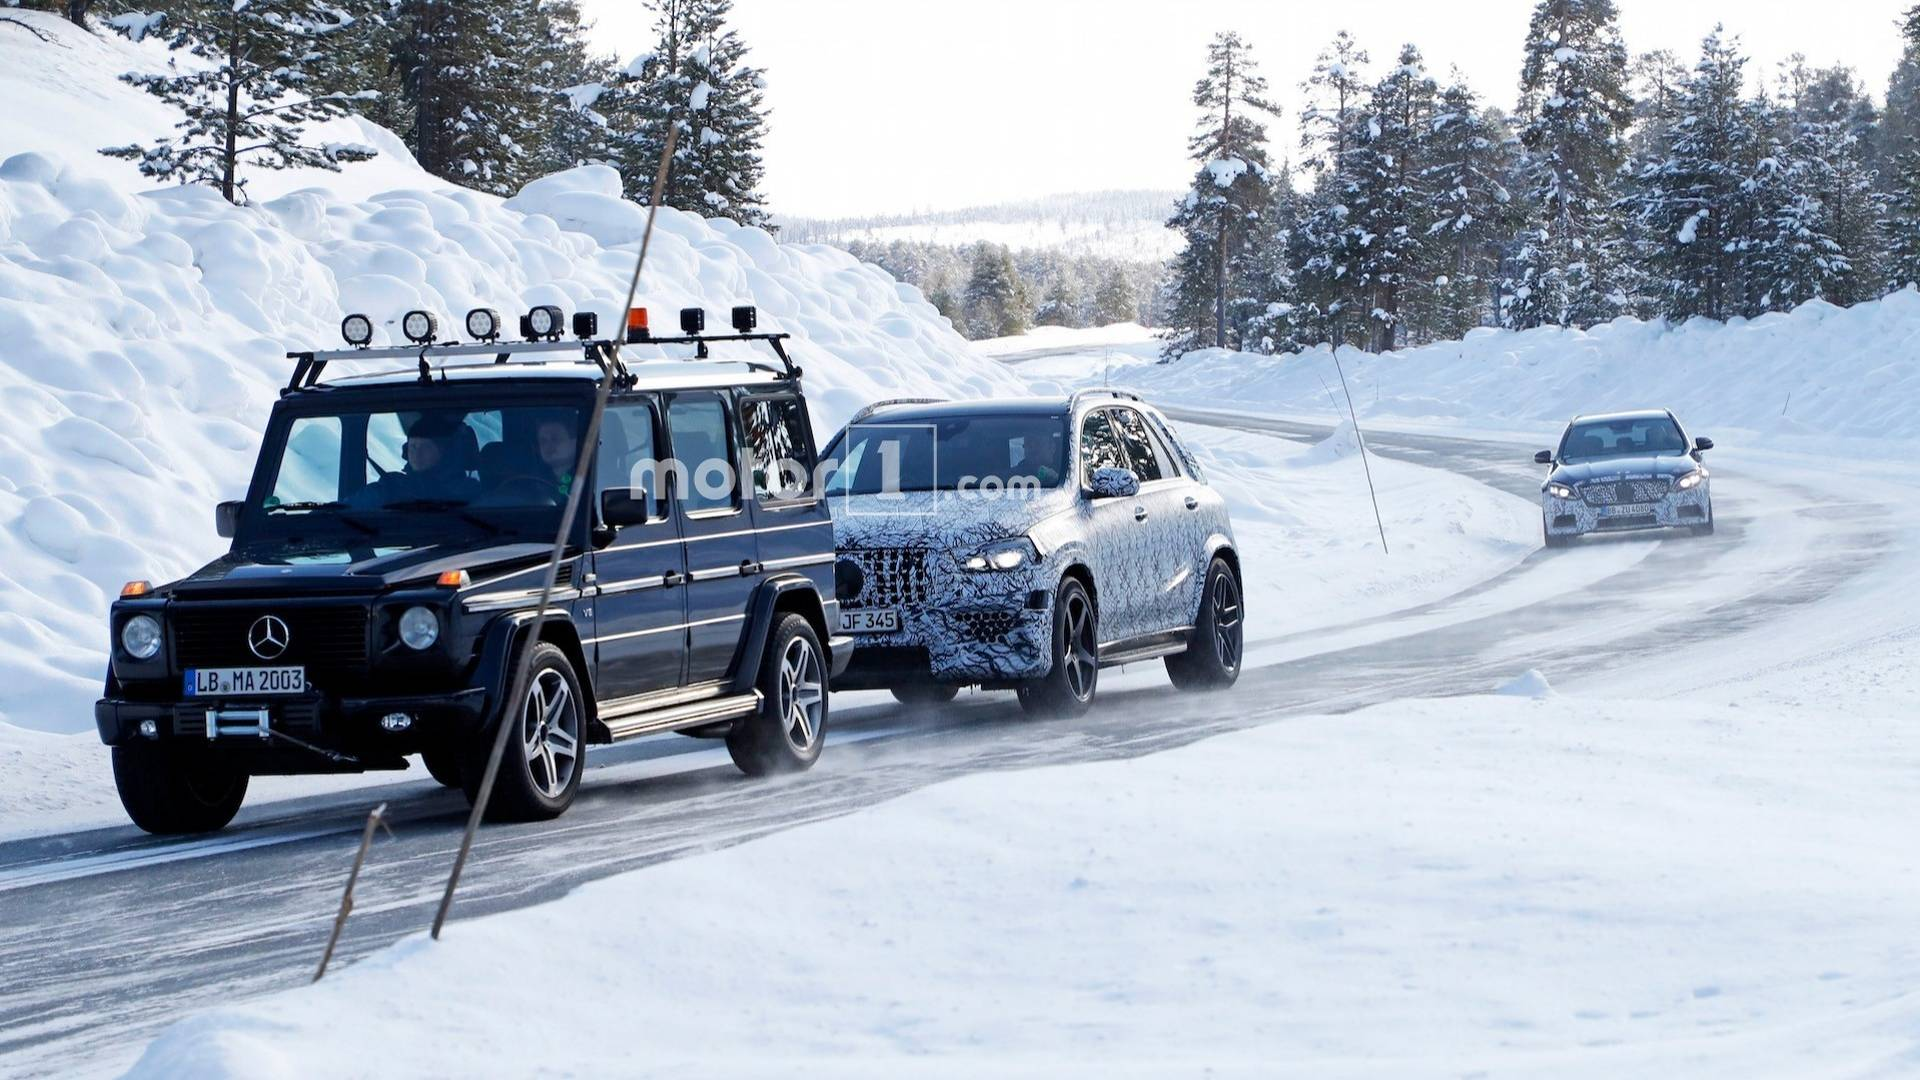 This Mercedes Amg Gle 63 Prototype Is Having A Bad Day